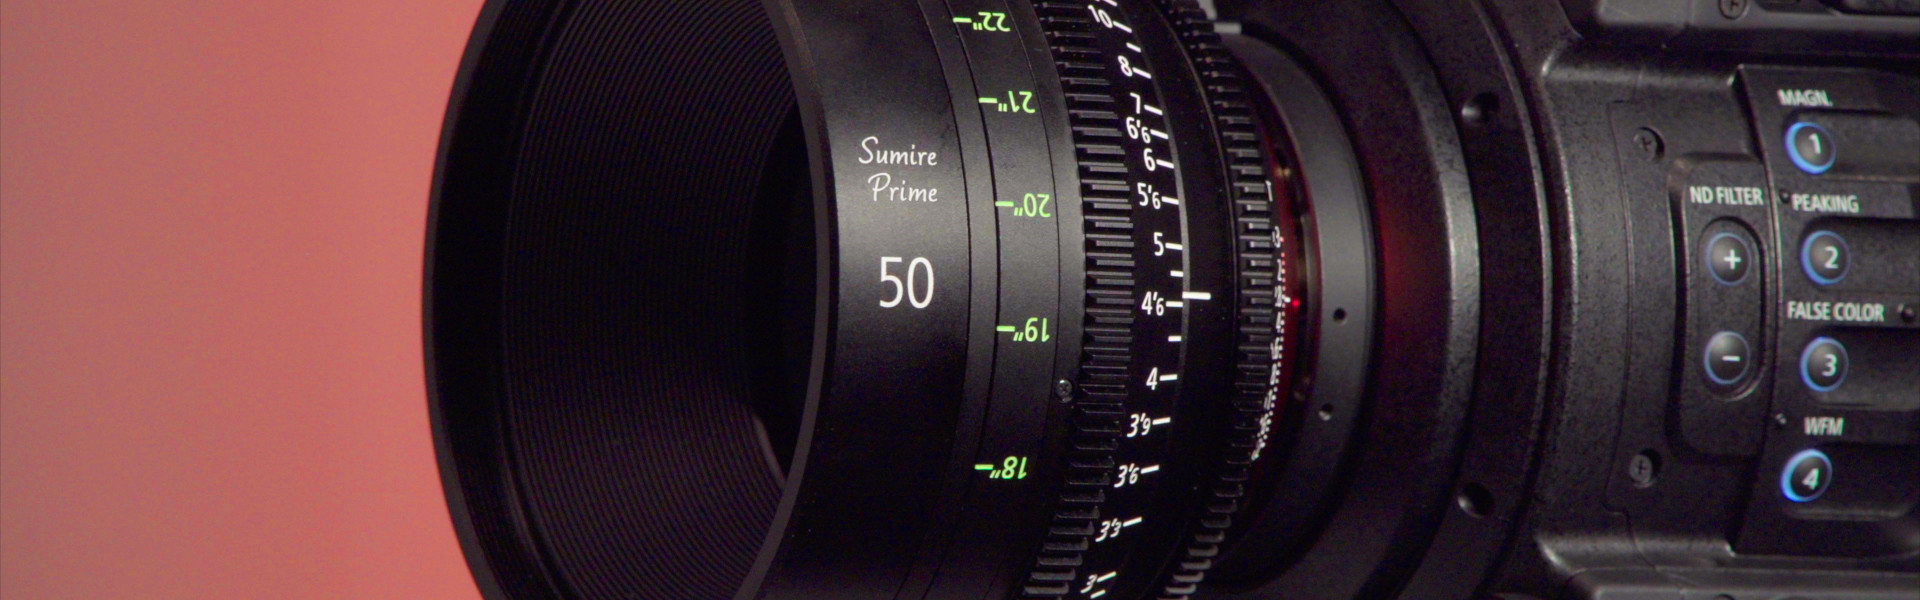 Header image for article First Look: Canon Sumire PL Prime Lenses